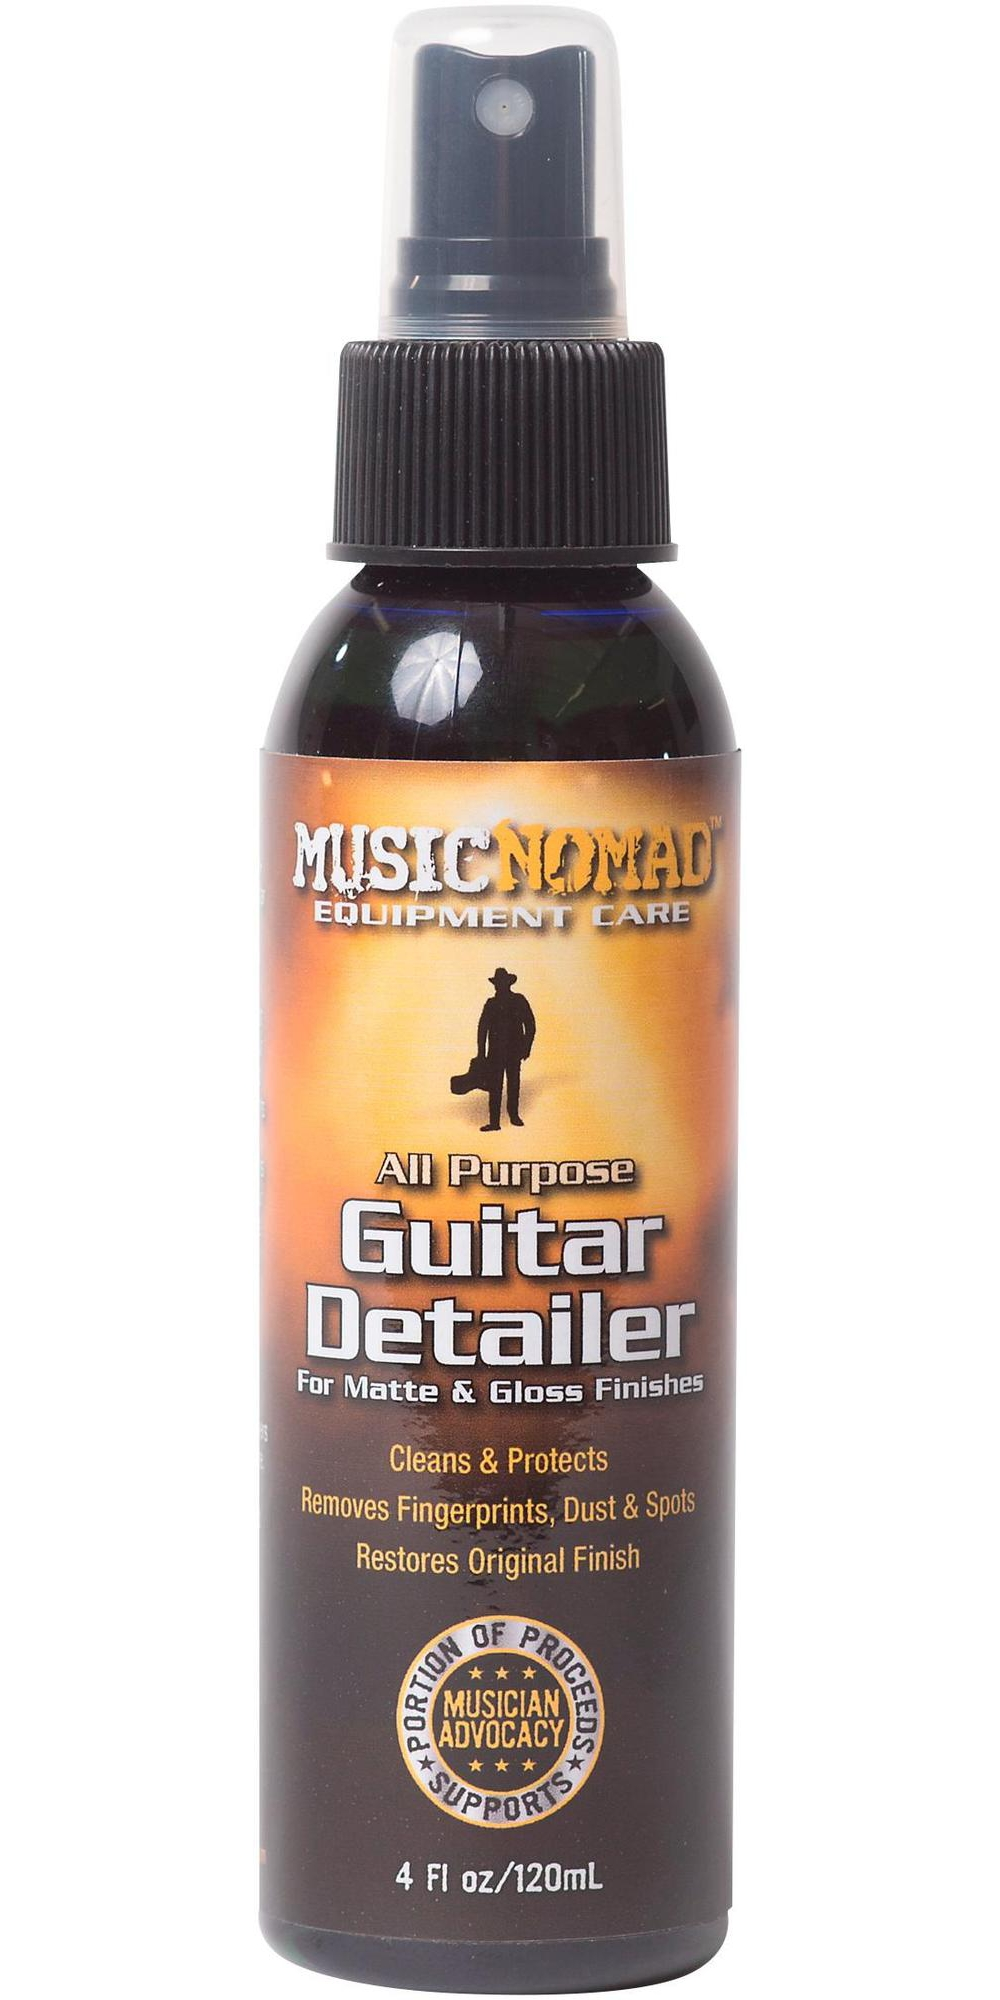 Music Nomad Guitar Detailer for Matte and Gloss Finishes by Music Nomad